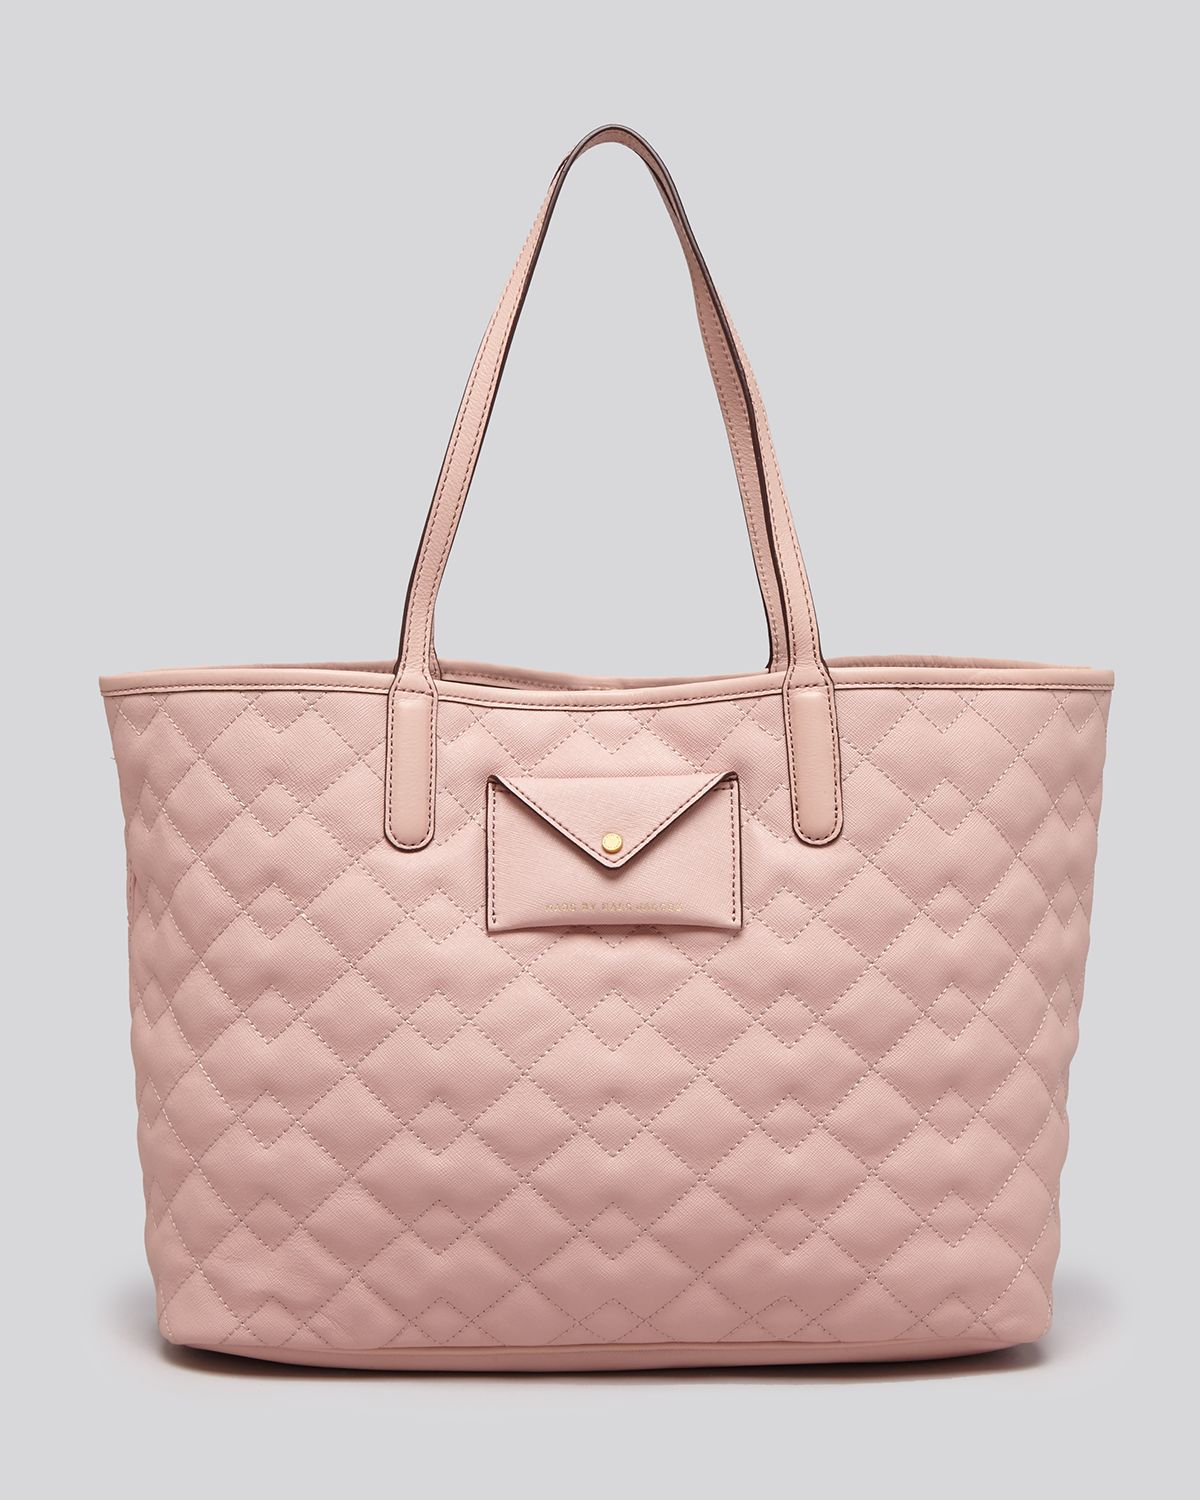 Lyst - Marc by marc jacobs Tote - Quilted Metropolitote 48 in Pink : marc by marc jacobs quilted tote - Adamdwight.com